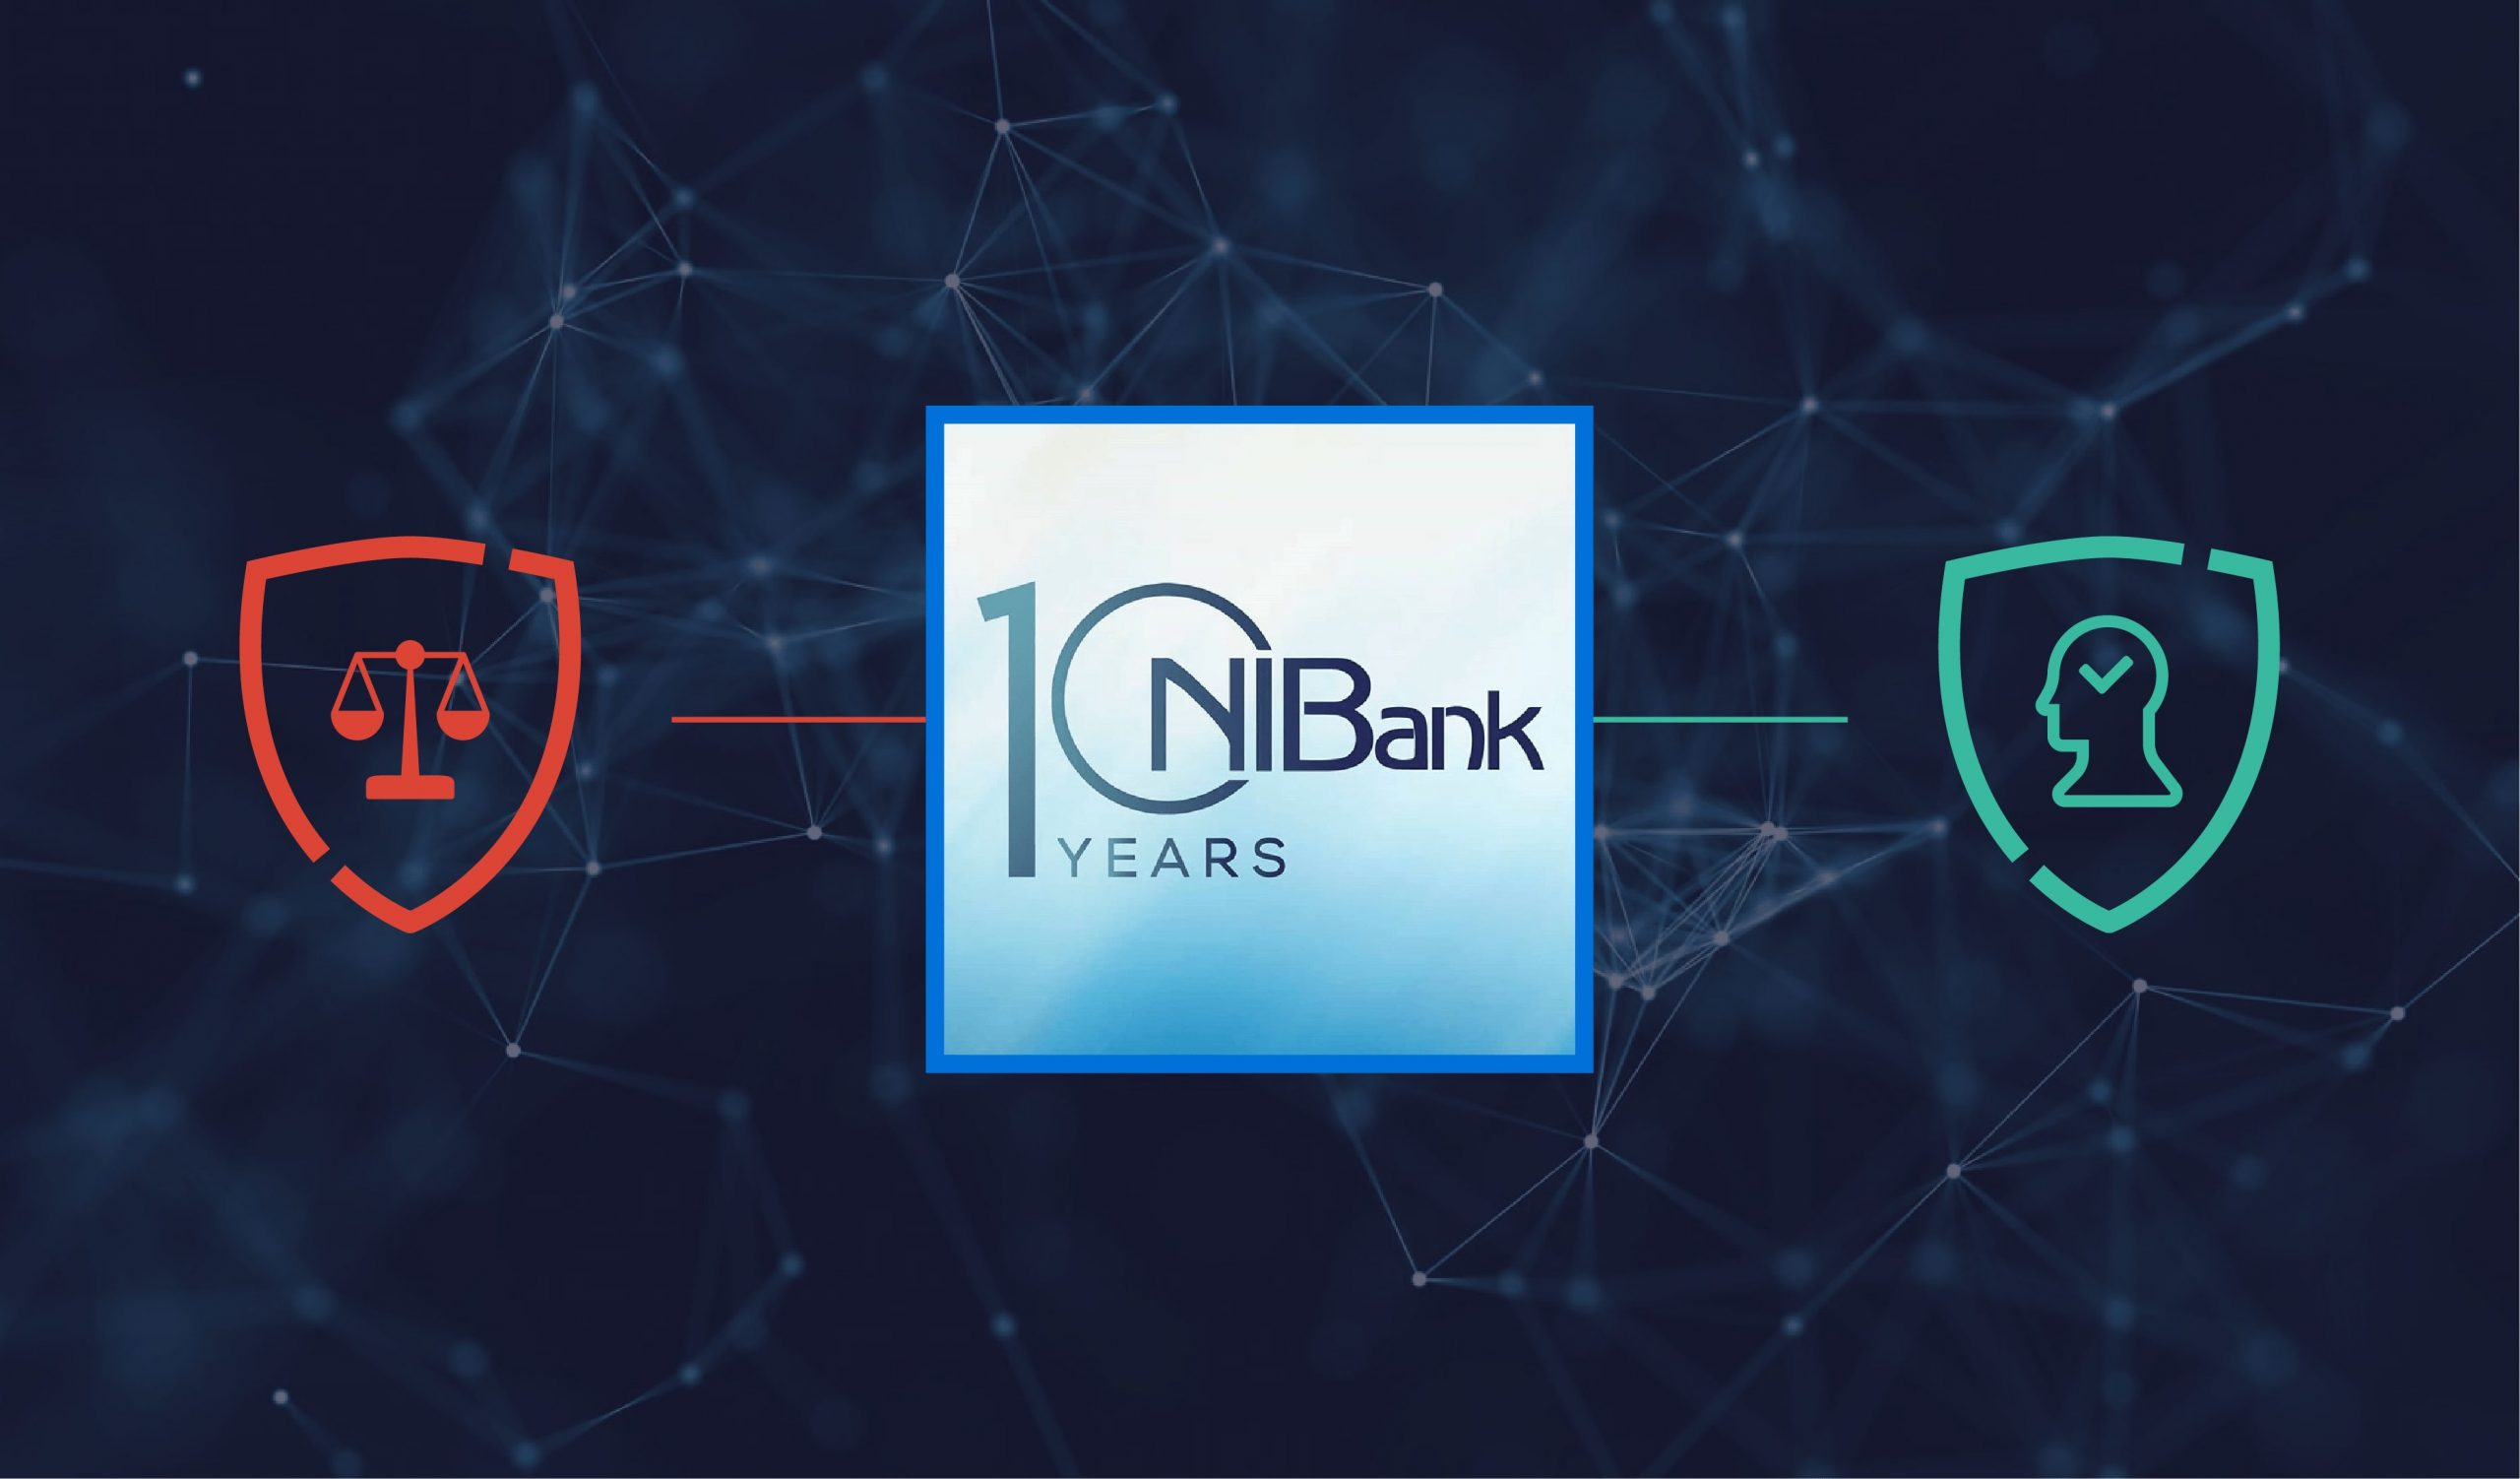 North International Bank Ltd. Selects IdentityMind to Consolidate All of its KYC and AML Operations into One Platform to Meet Regulatory Requirements